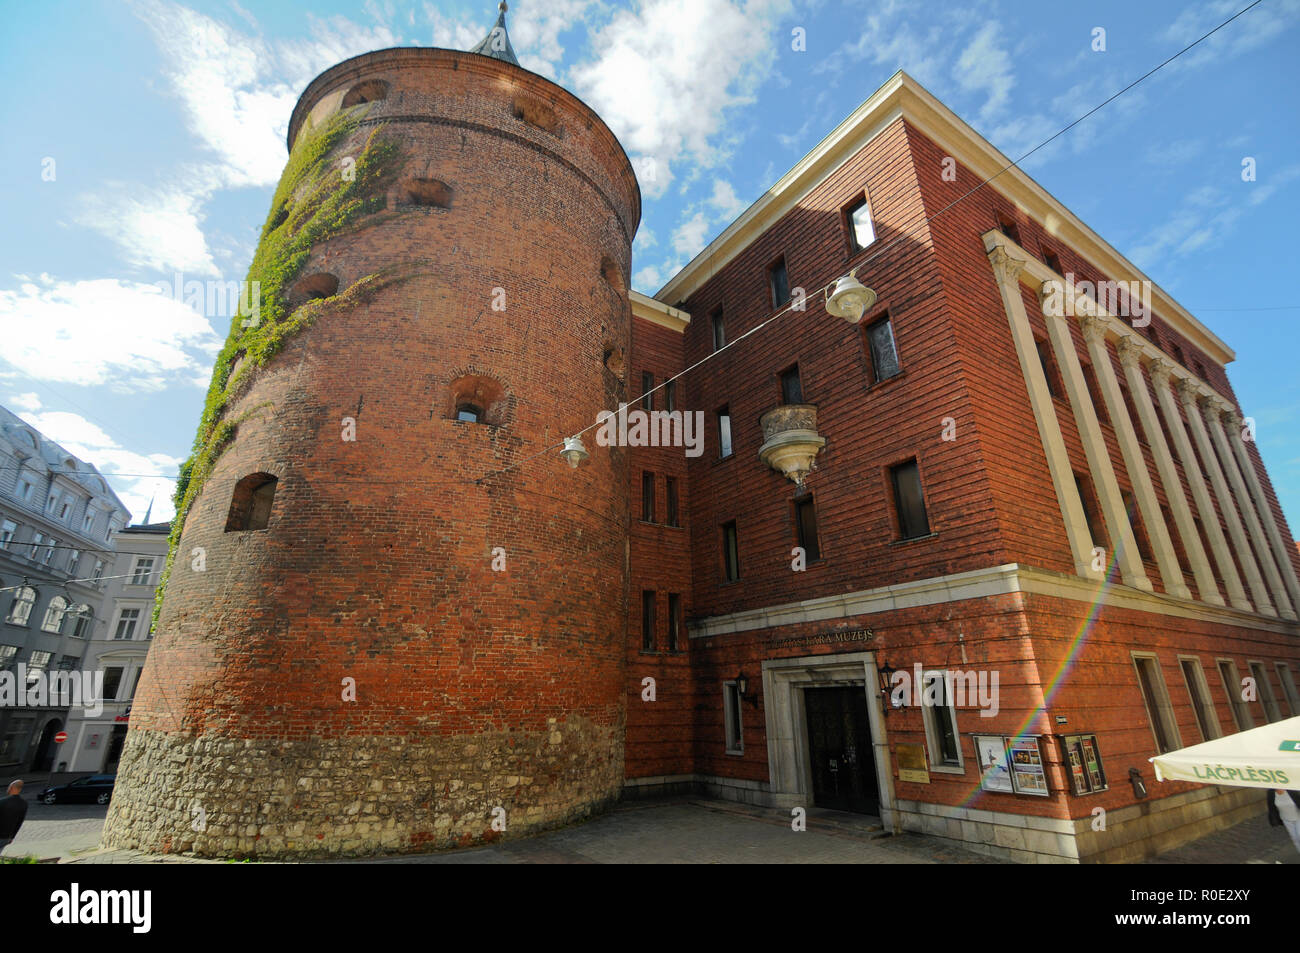 Latvian War Museum, Riga - Stock Image